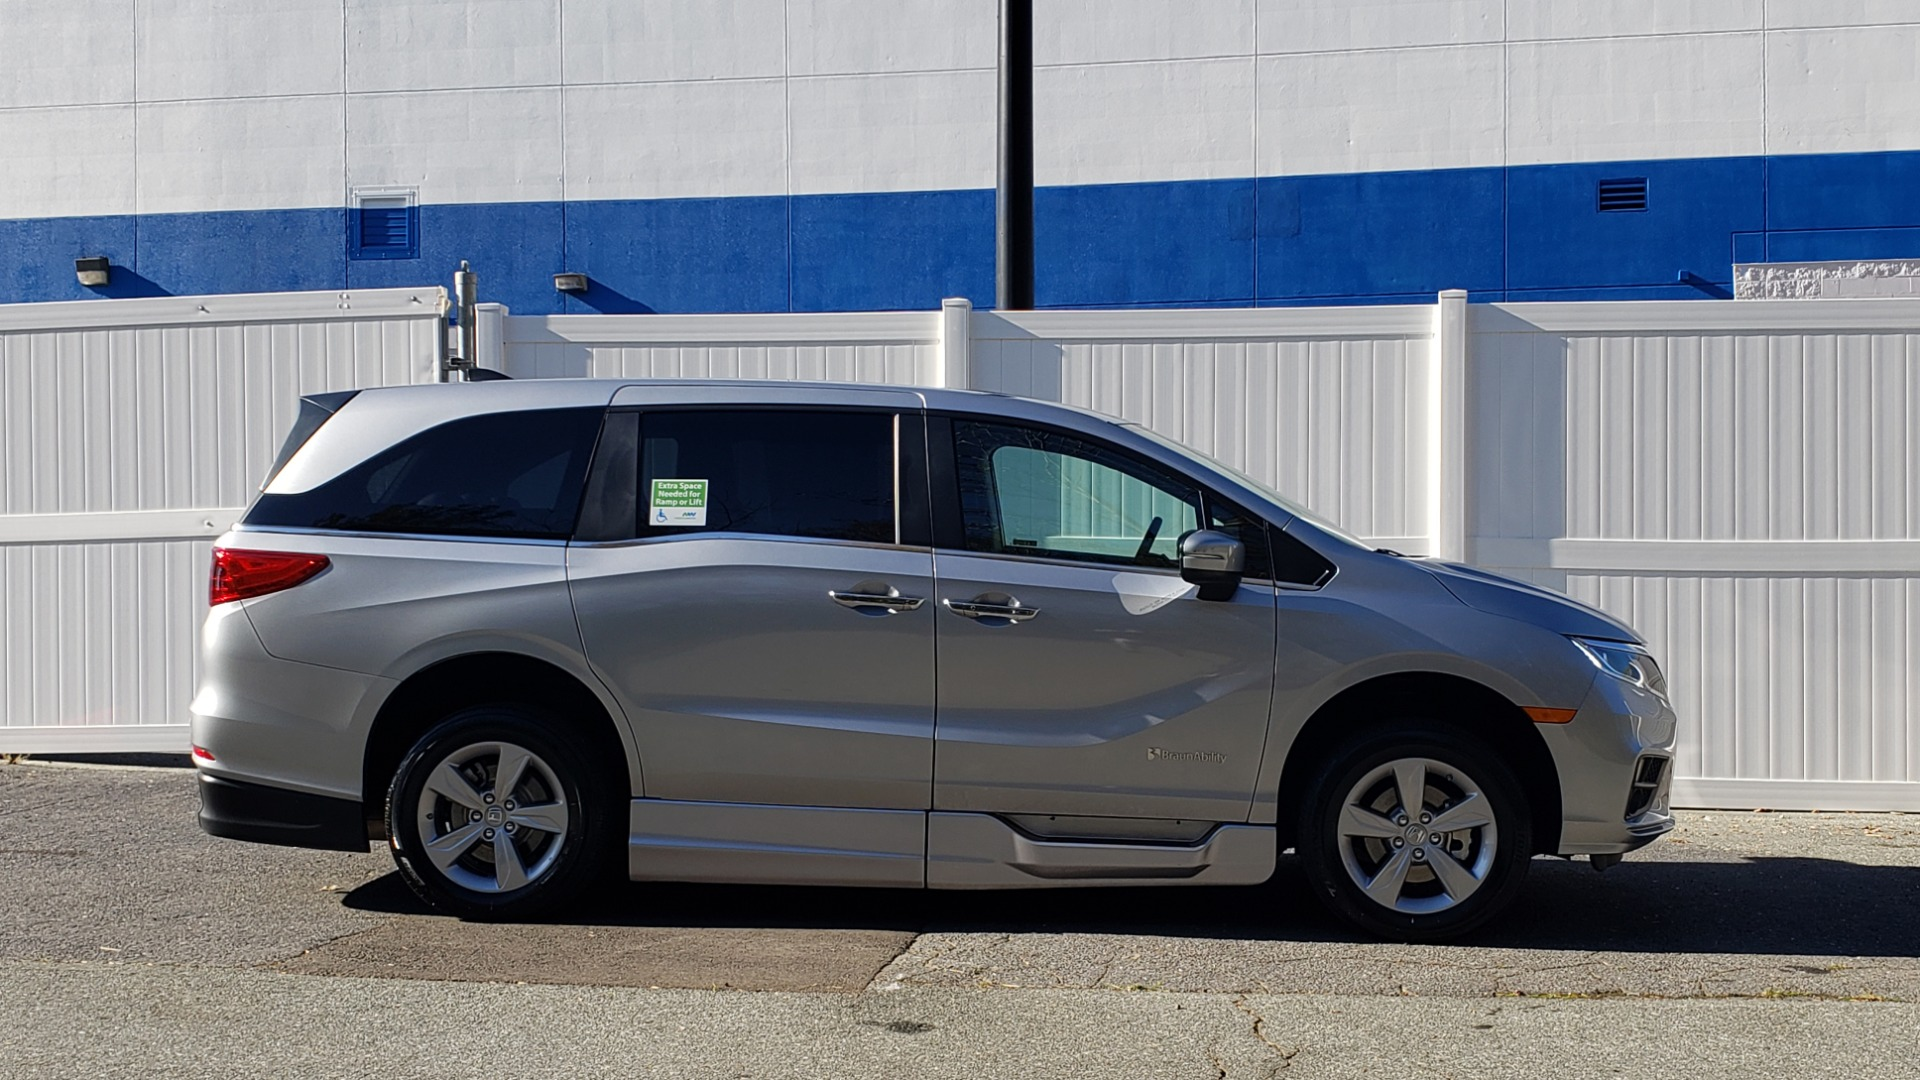 Used 2019 Honda ODYSSEY EX-L BRAUNABILITY / NAV / RES / LKA / BLUE-RAY / SUNROOF / REARVIEW for sale $49,999 at Formula Imports in Charlotte NC 28227 5